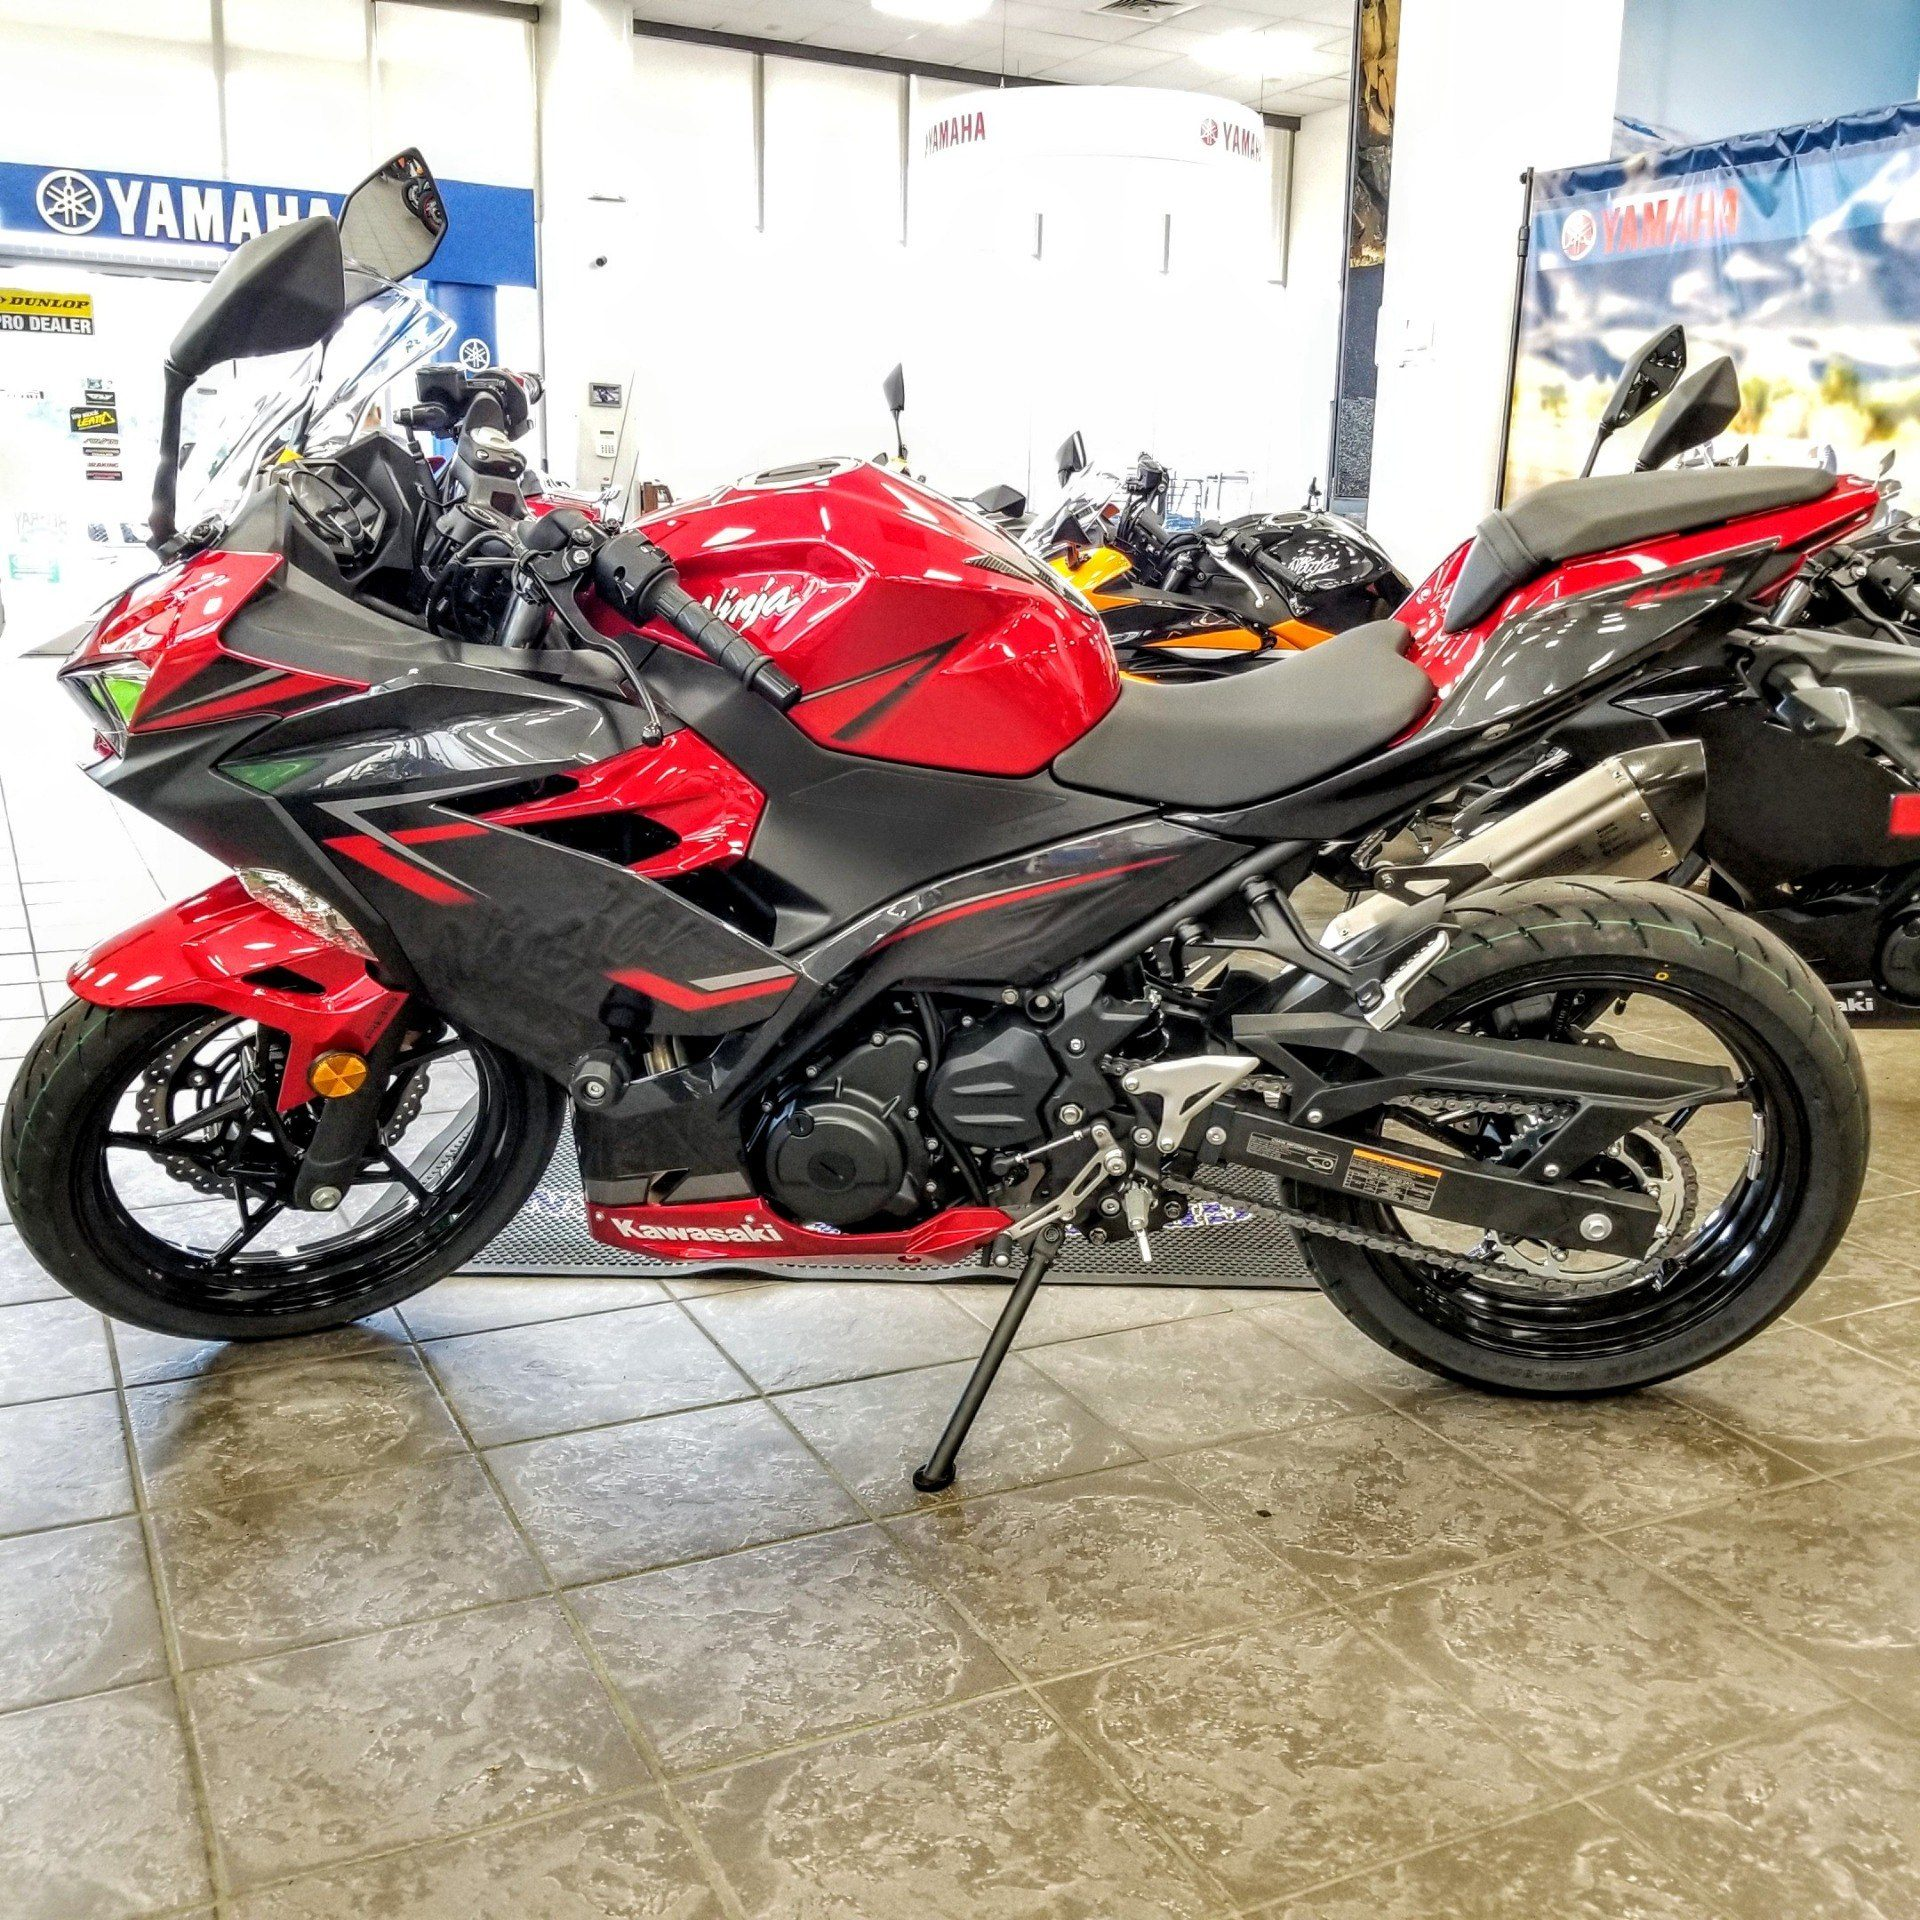 2019 Kawasaki Ninja 400 ABS in Hickory, North Carolina - Photo 4